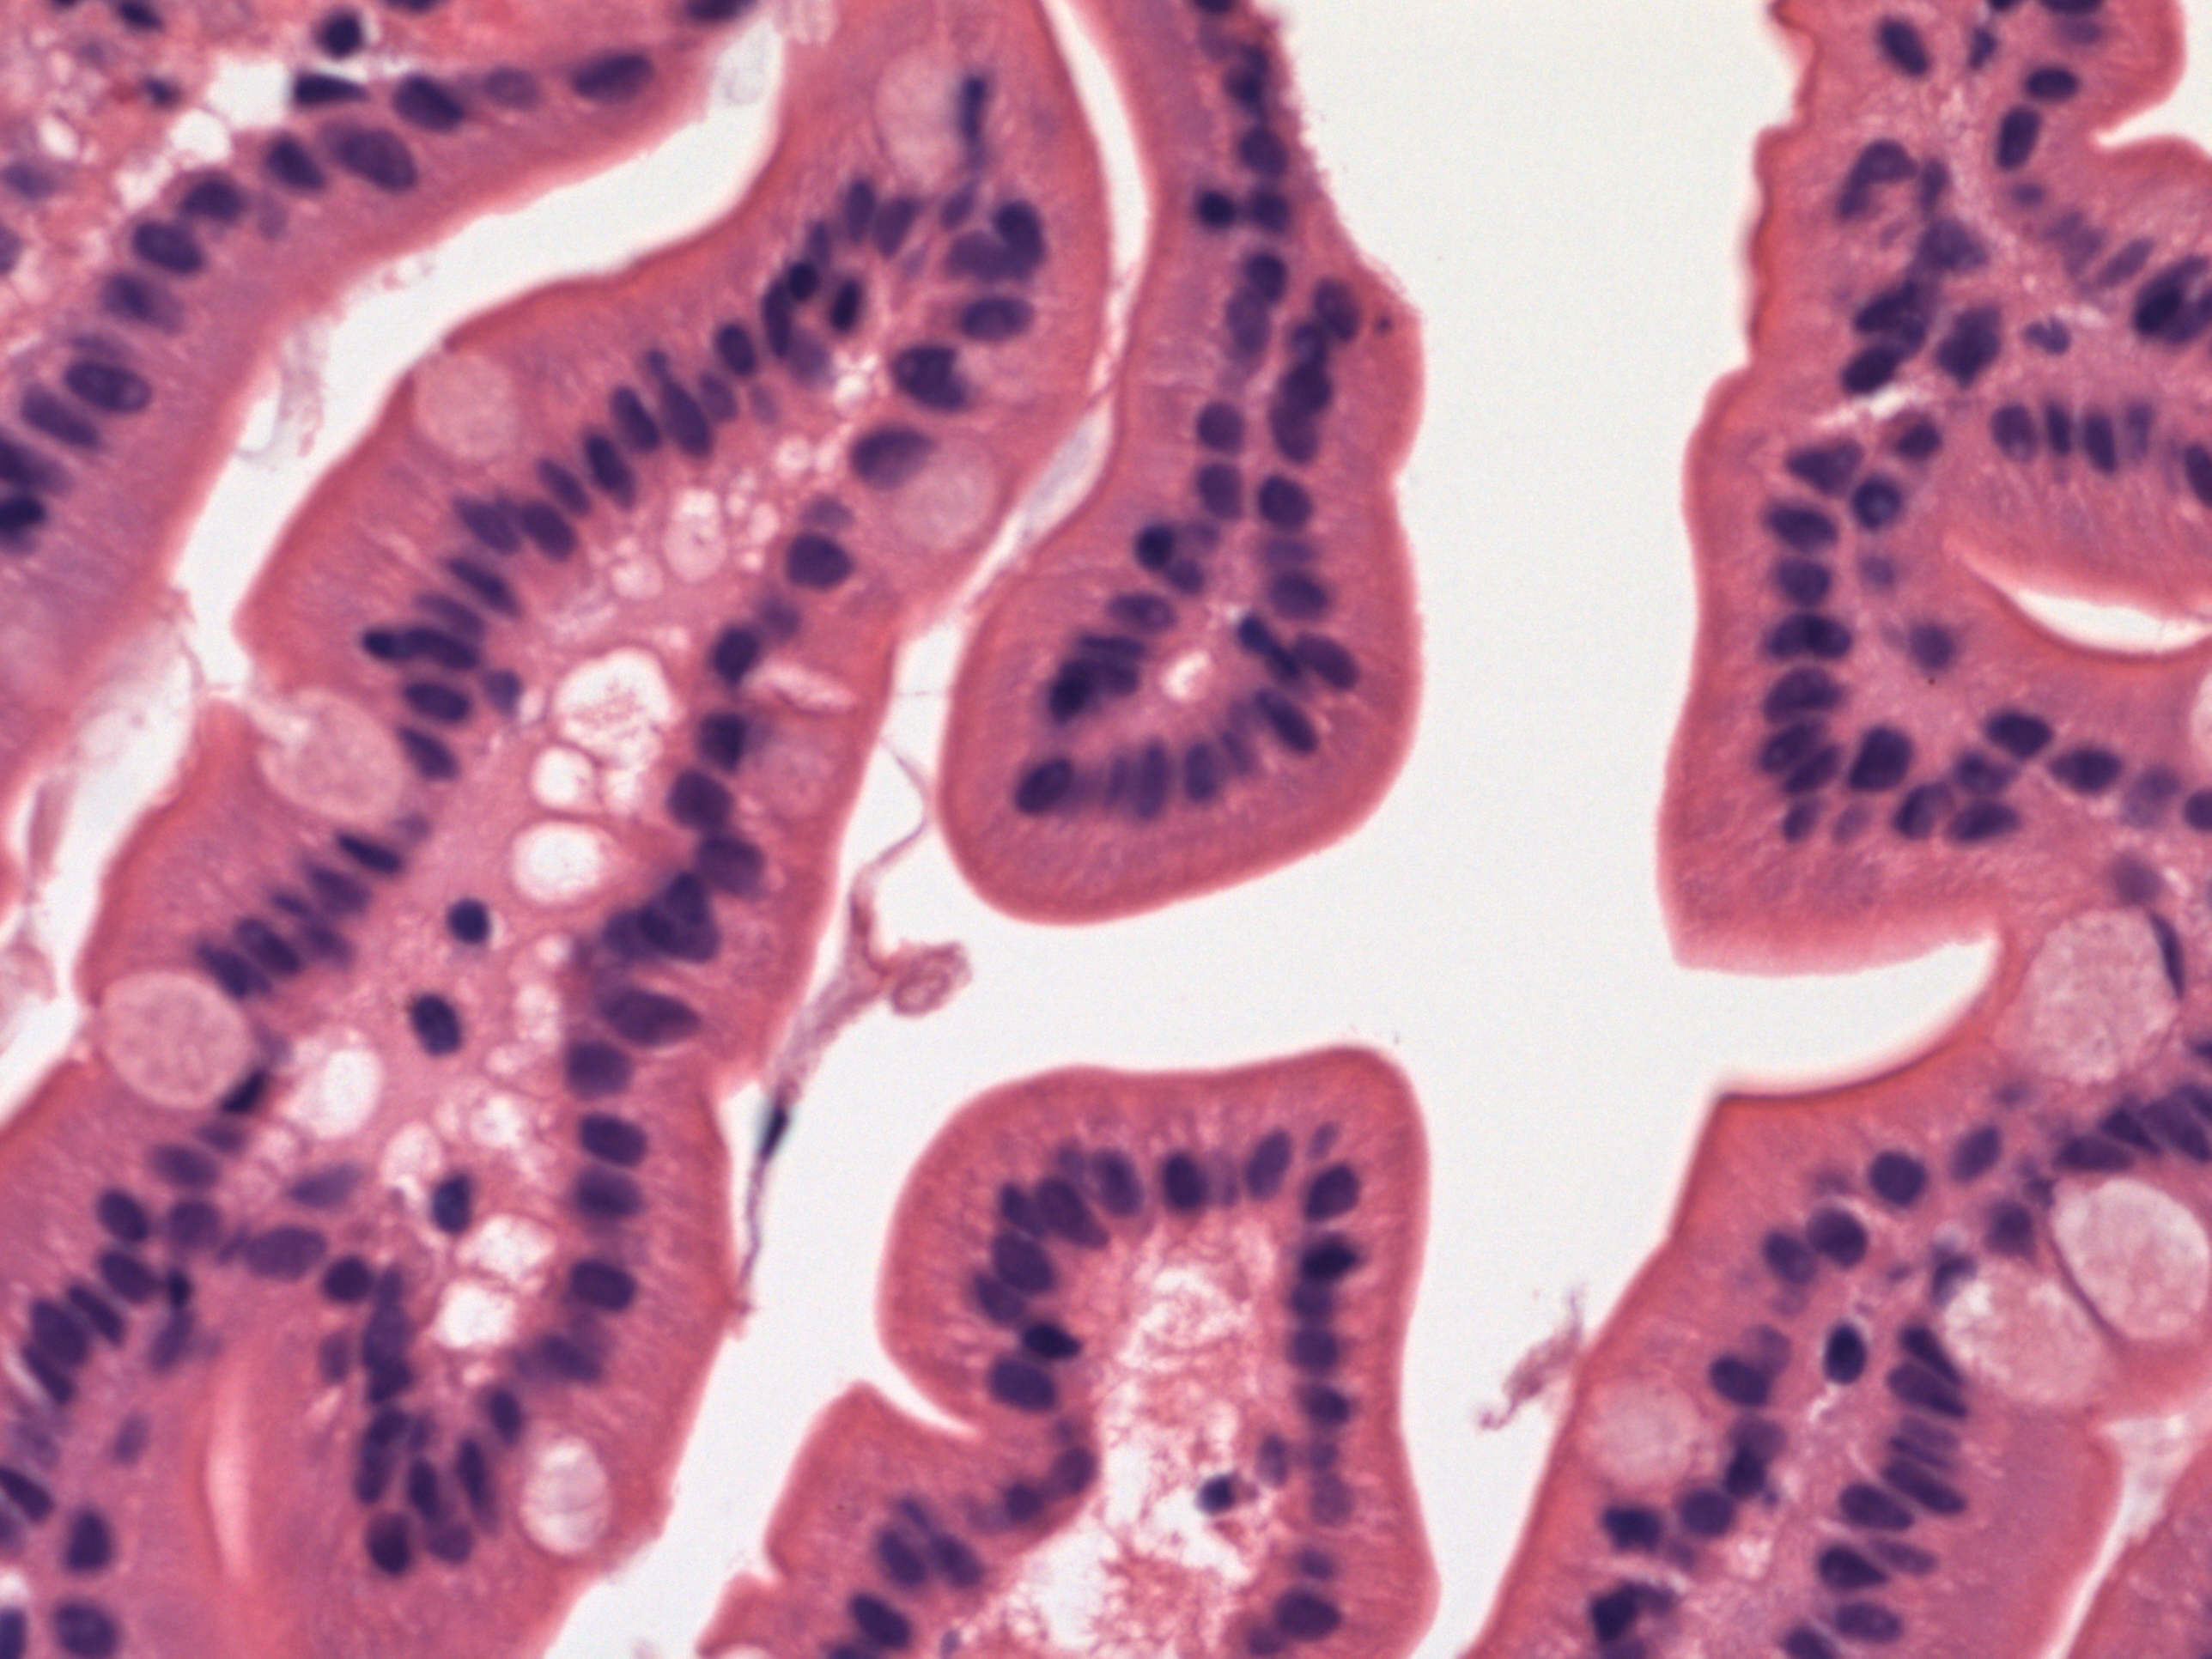 Small intestine-normal (duodenum)